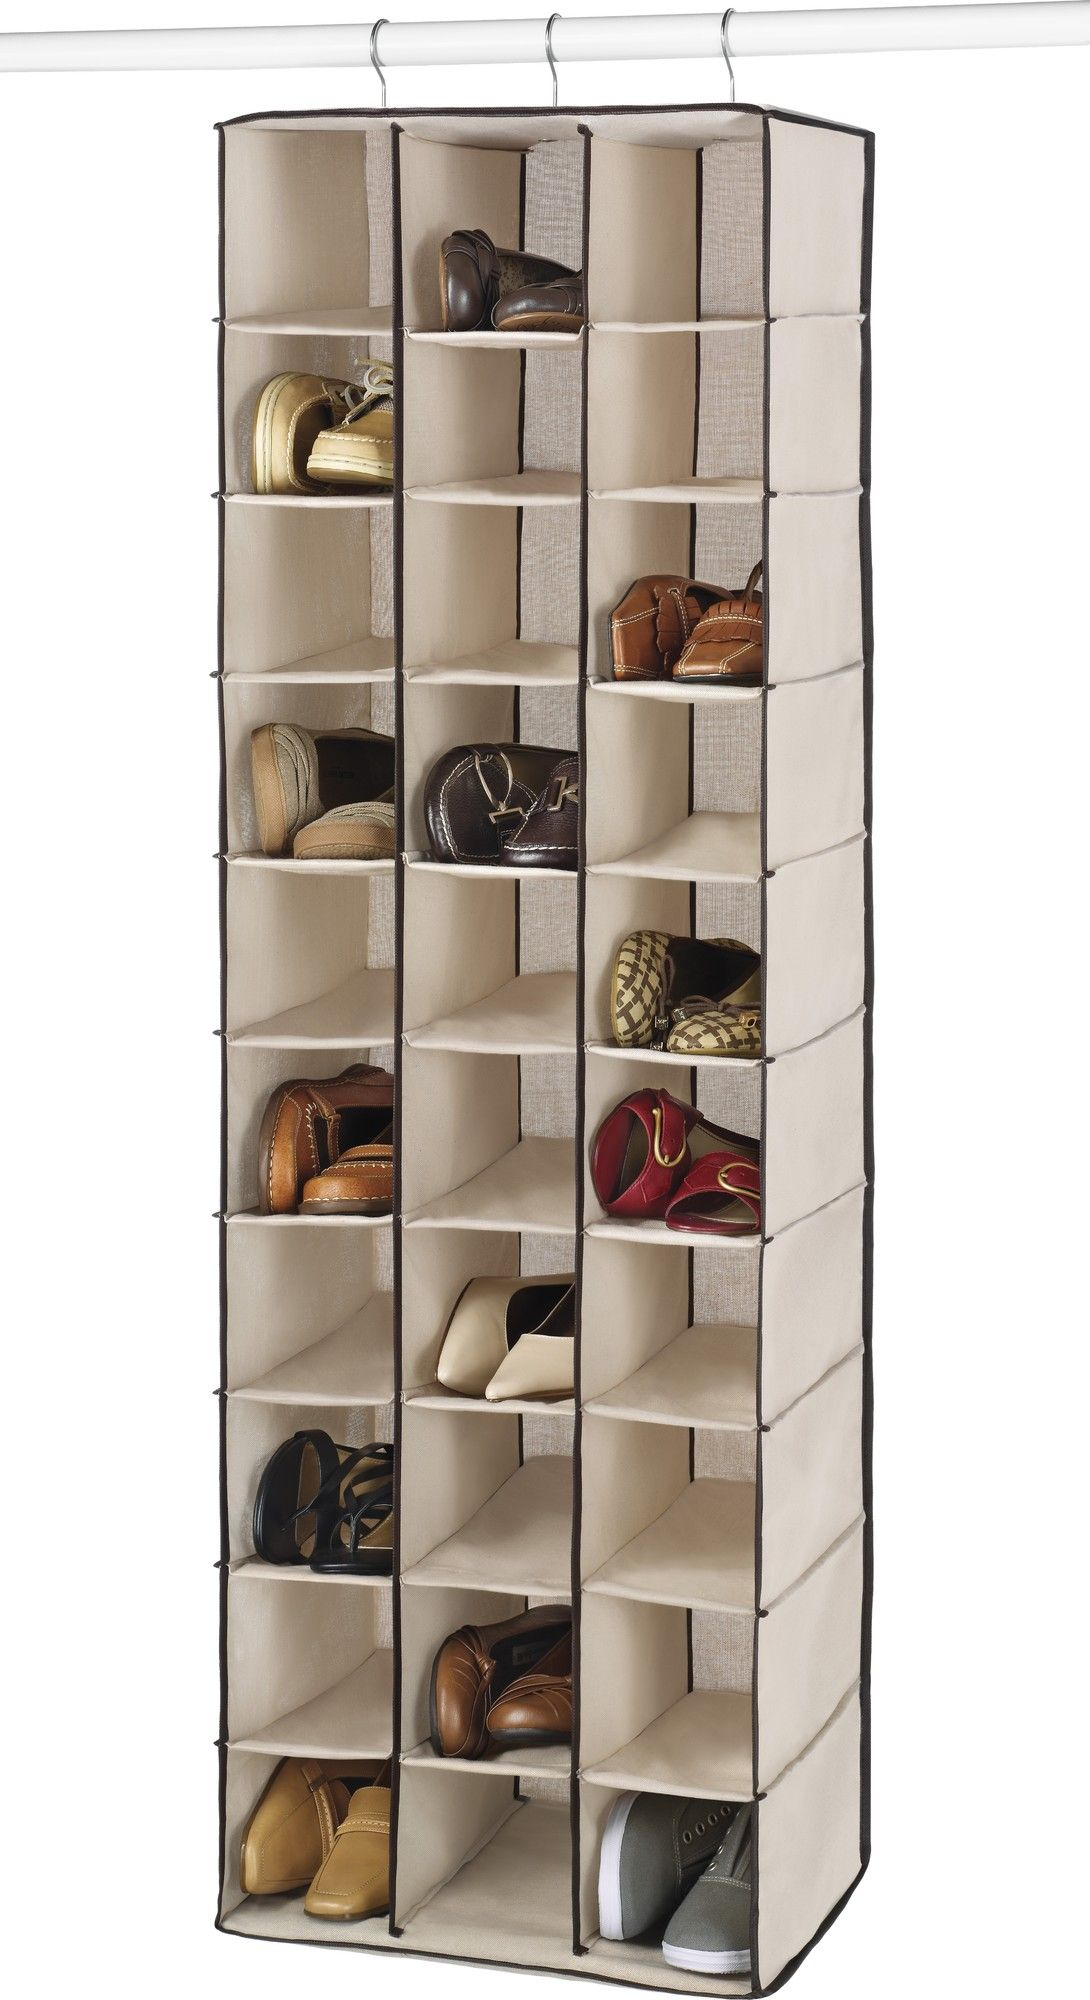 30 Pocket Hanging Shoe Organizer